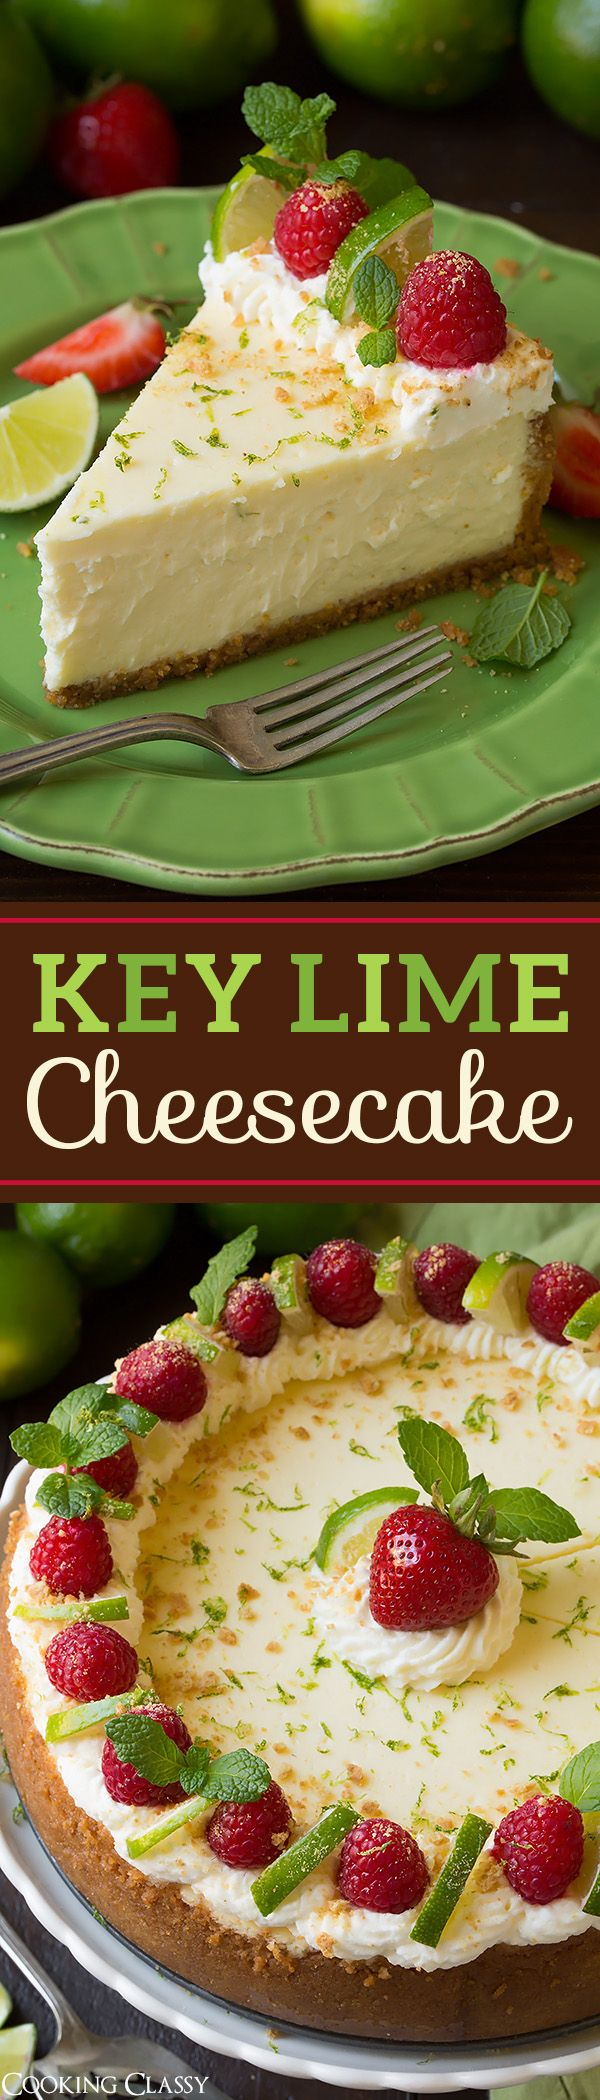 Key Lime Cheesecake - the perfect summer cheesecake! This is TO DIE FOR!! (gf graham crackers)